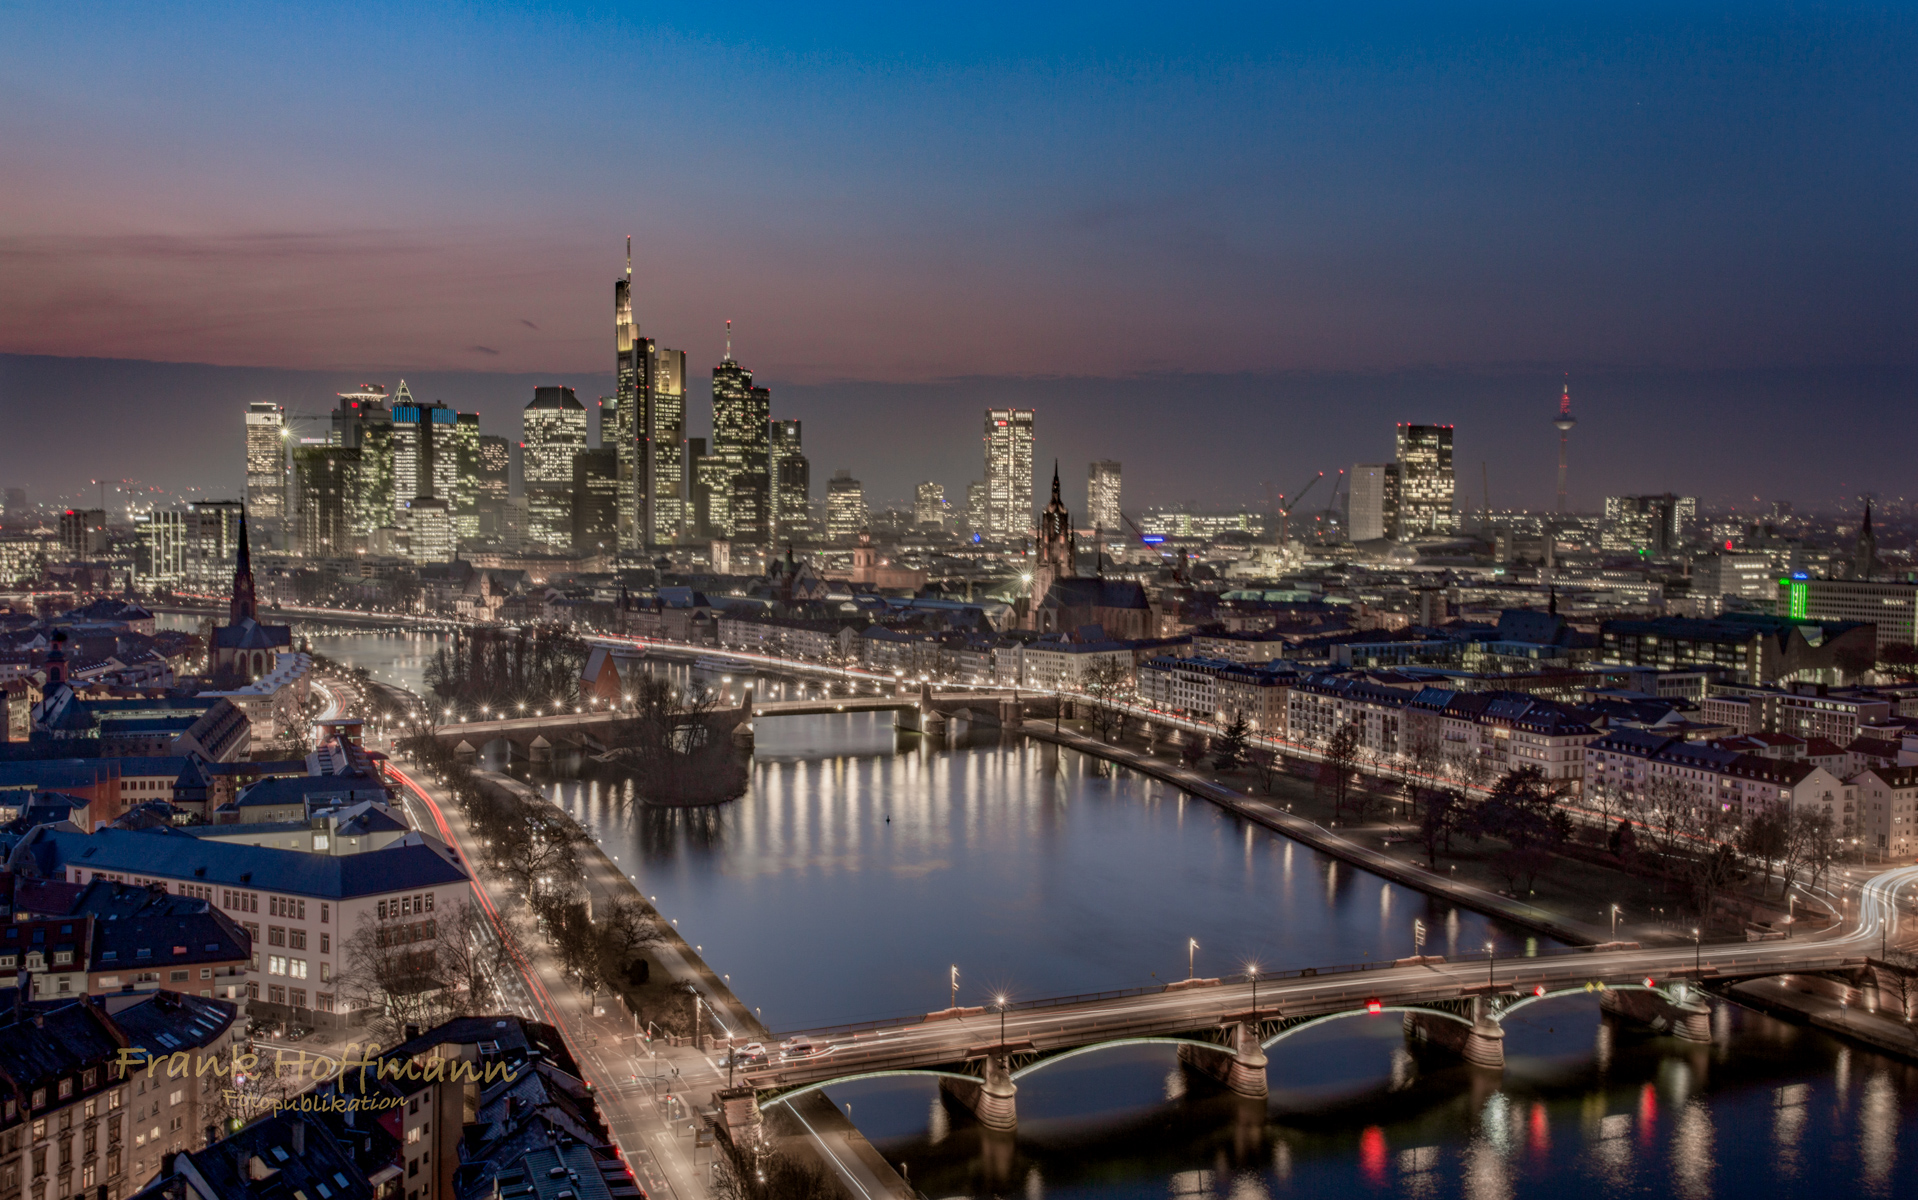 Banken Skyline Frankfurt am Main.